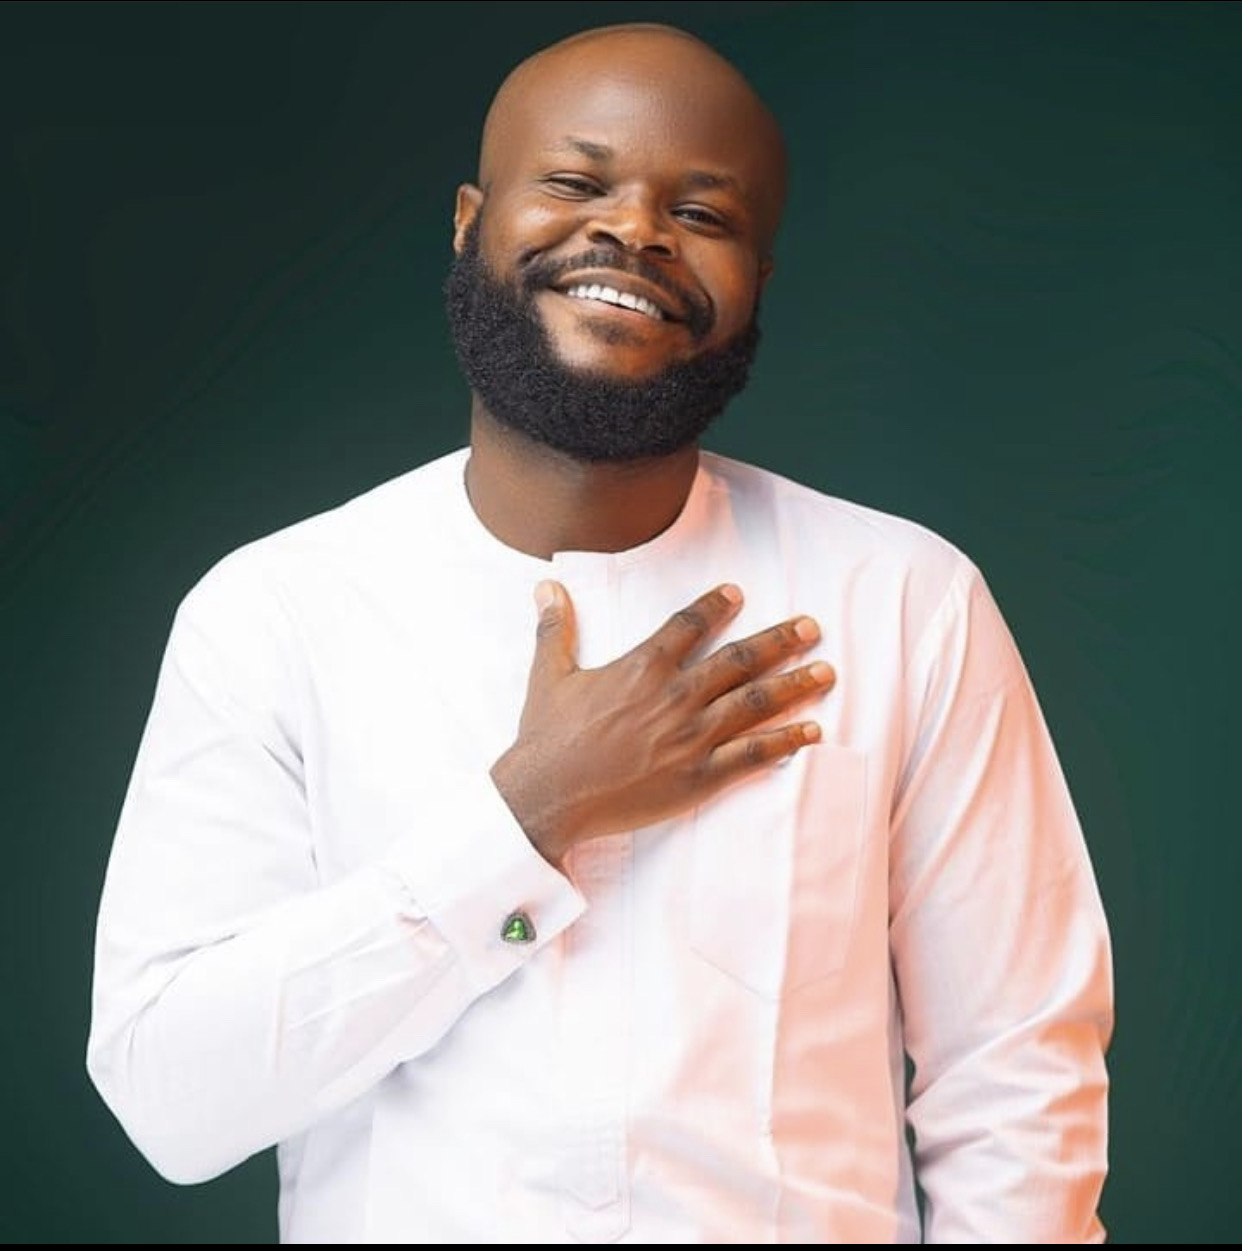 Ideh Chukwuma, popularly known as Onesoul